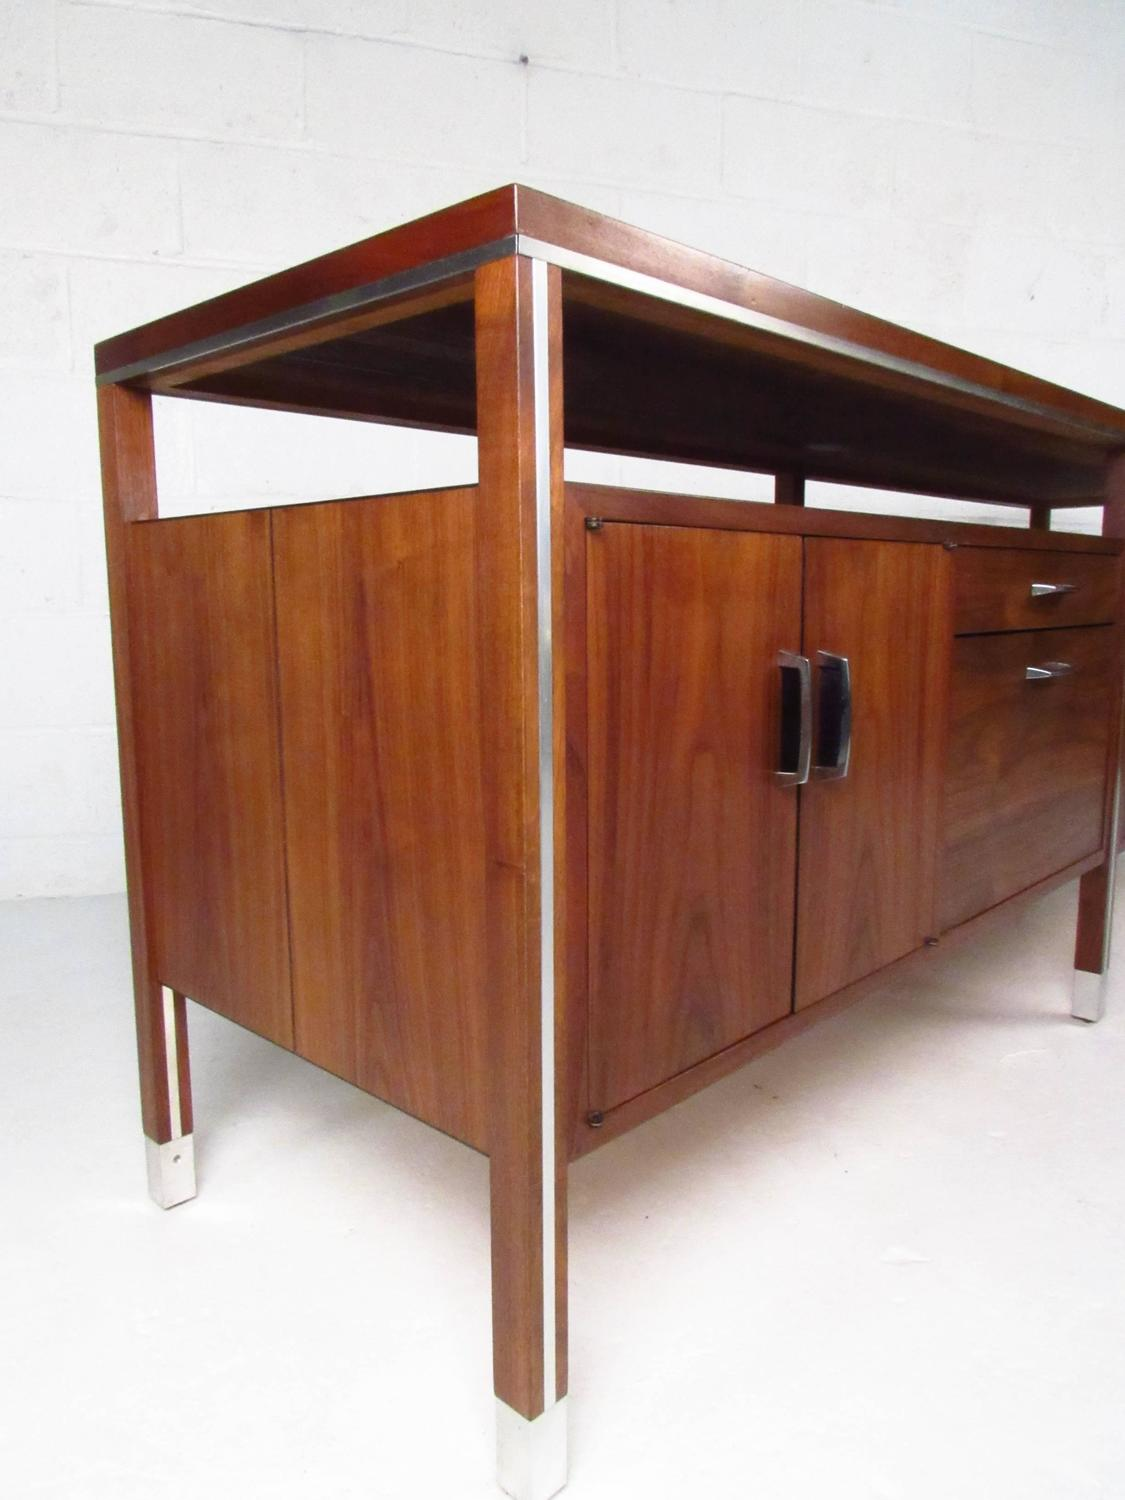 Mid Century Modern fice Credenza by Directional at 1stdibs